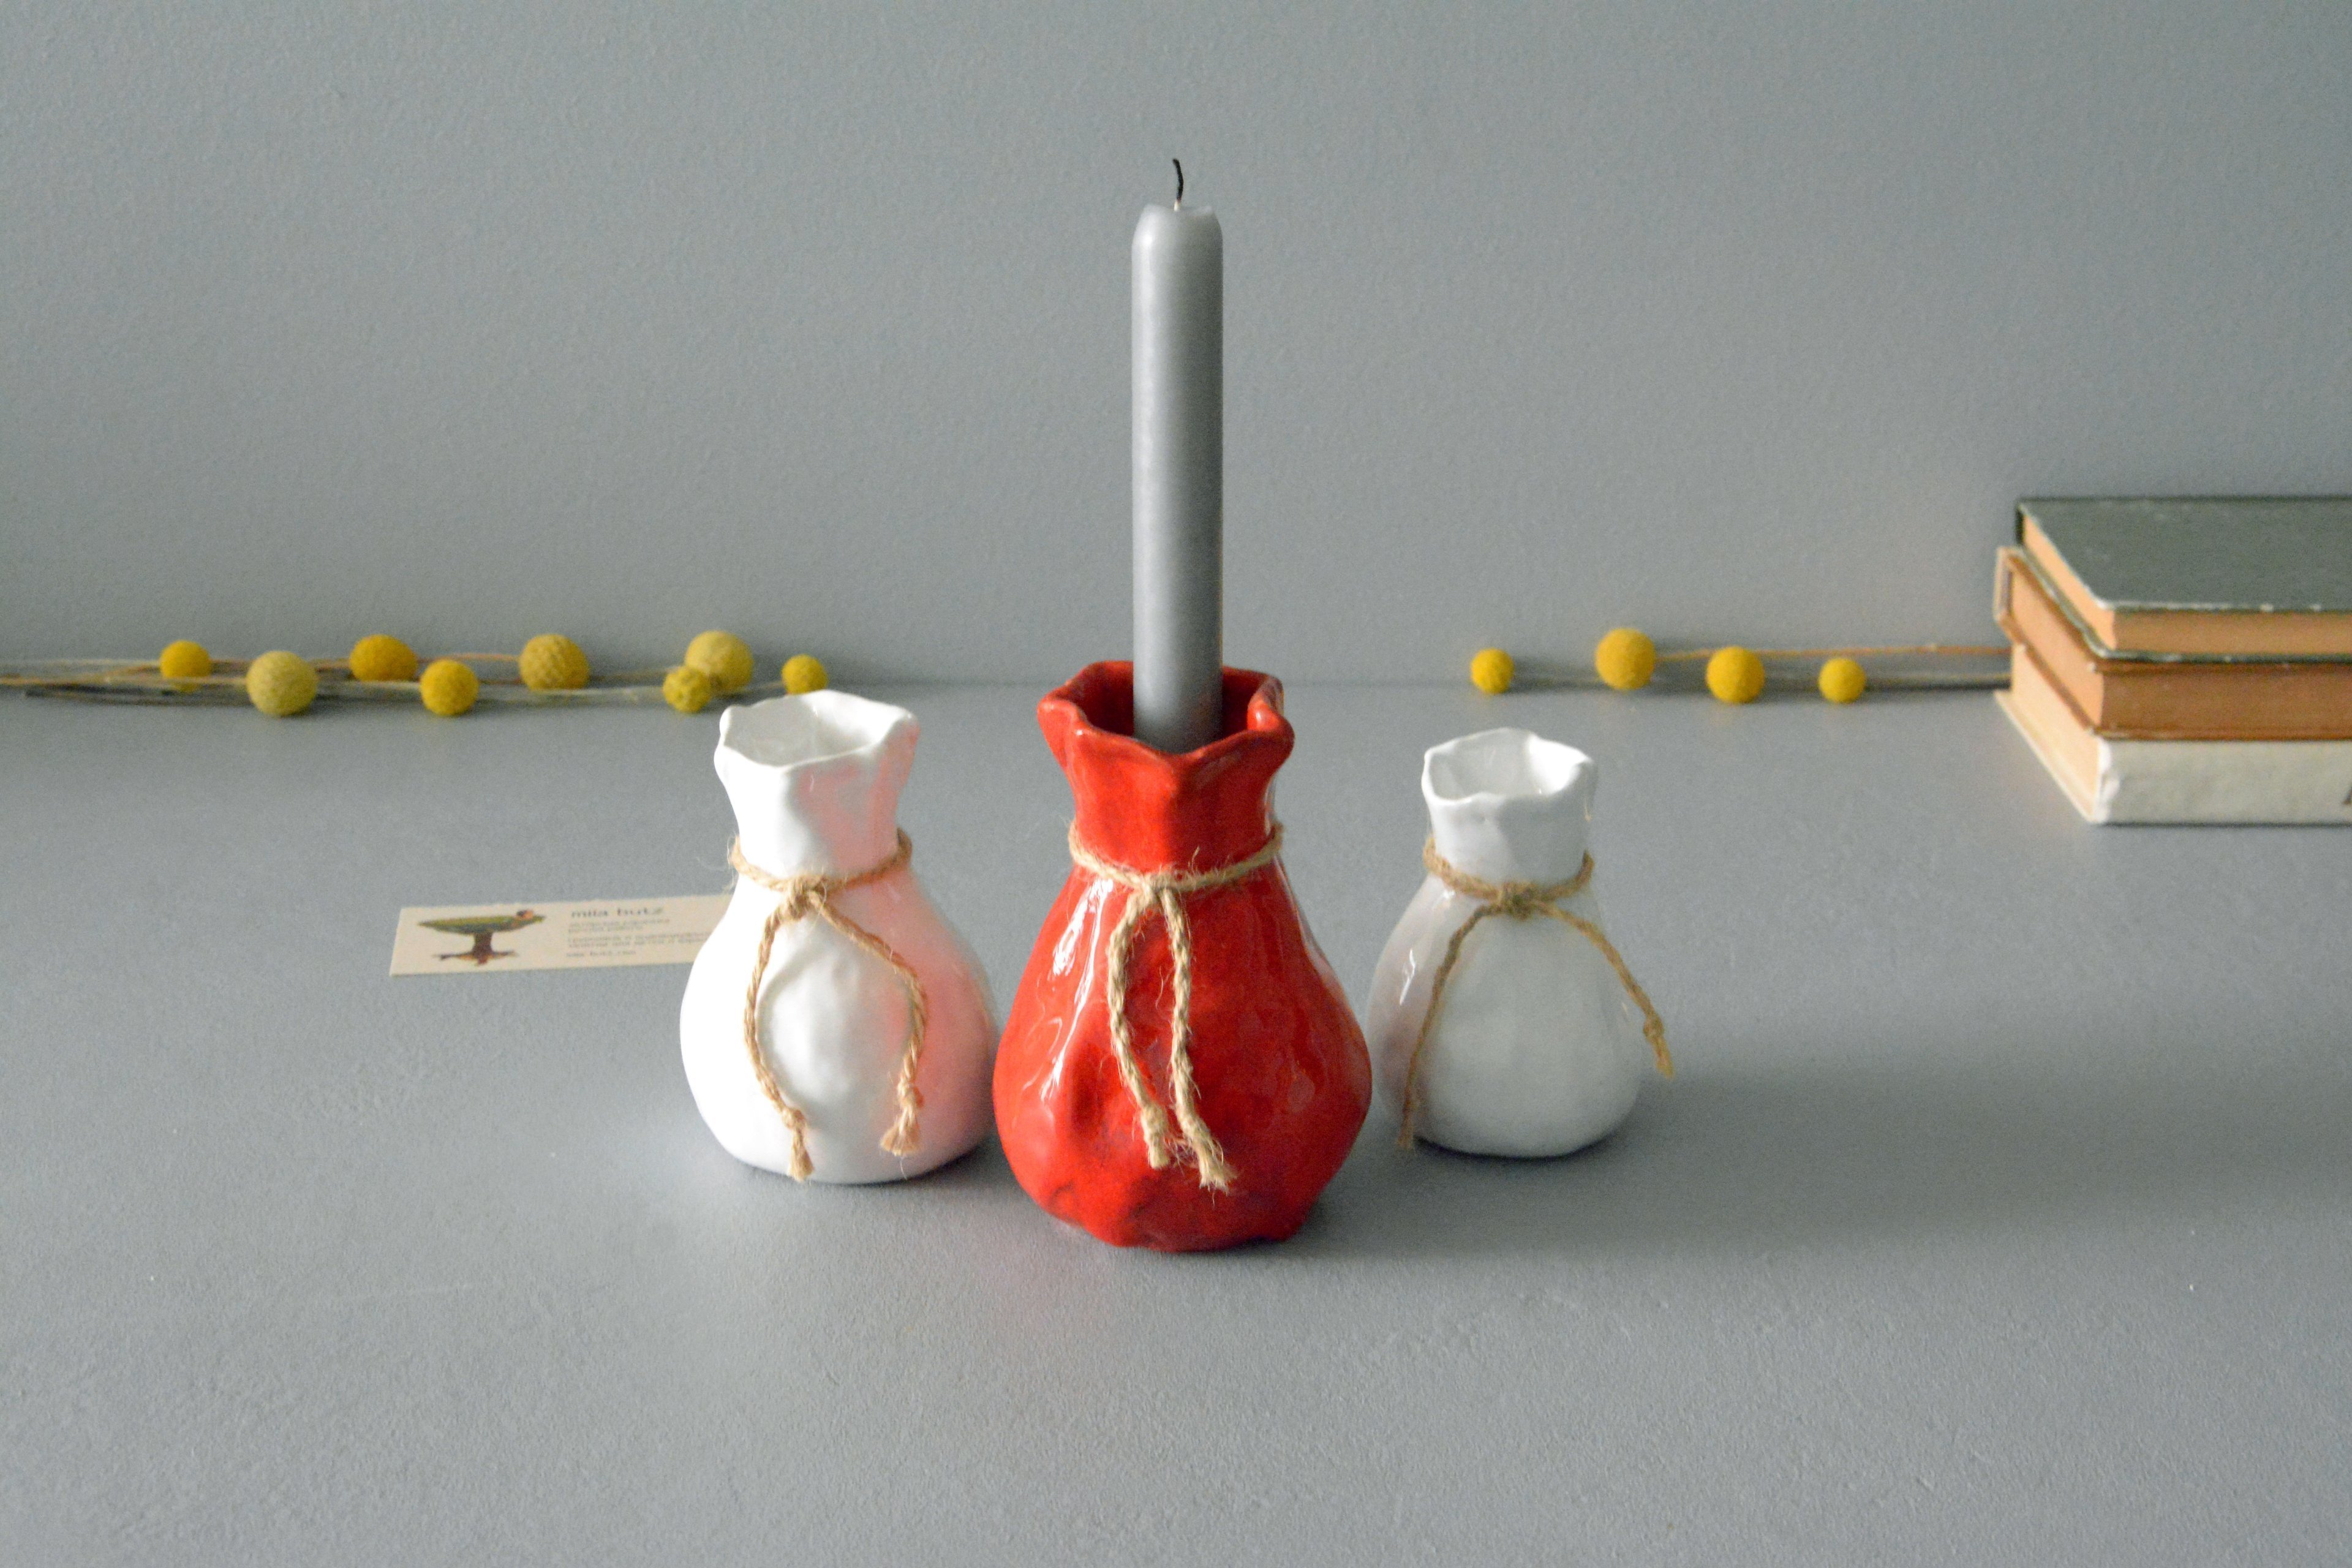 Candle vase «Red Bagful», height - 12 cm, color - red. Photo 1411.